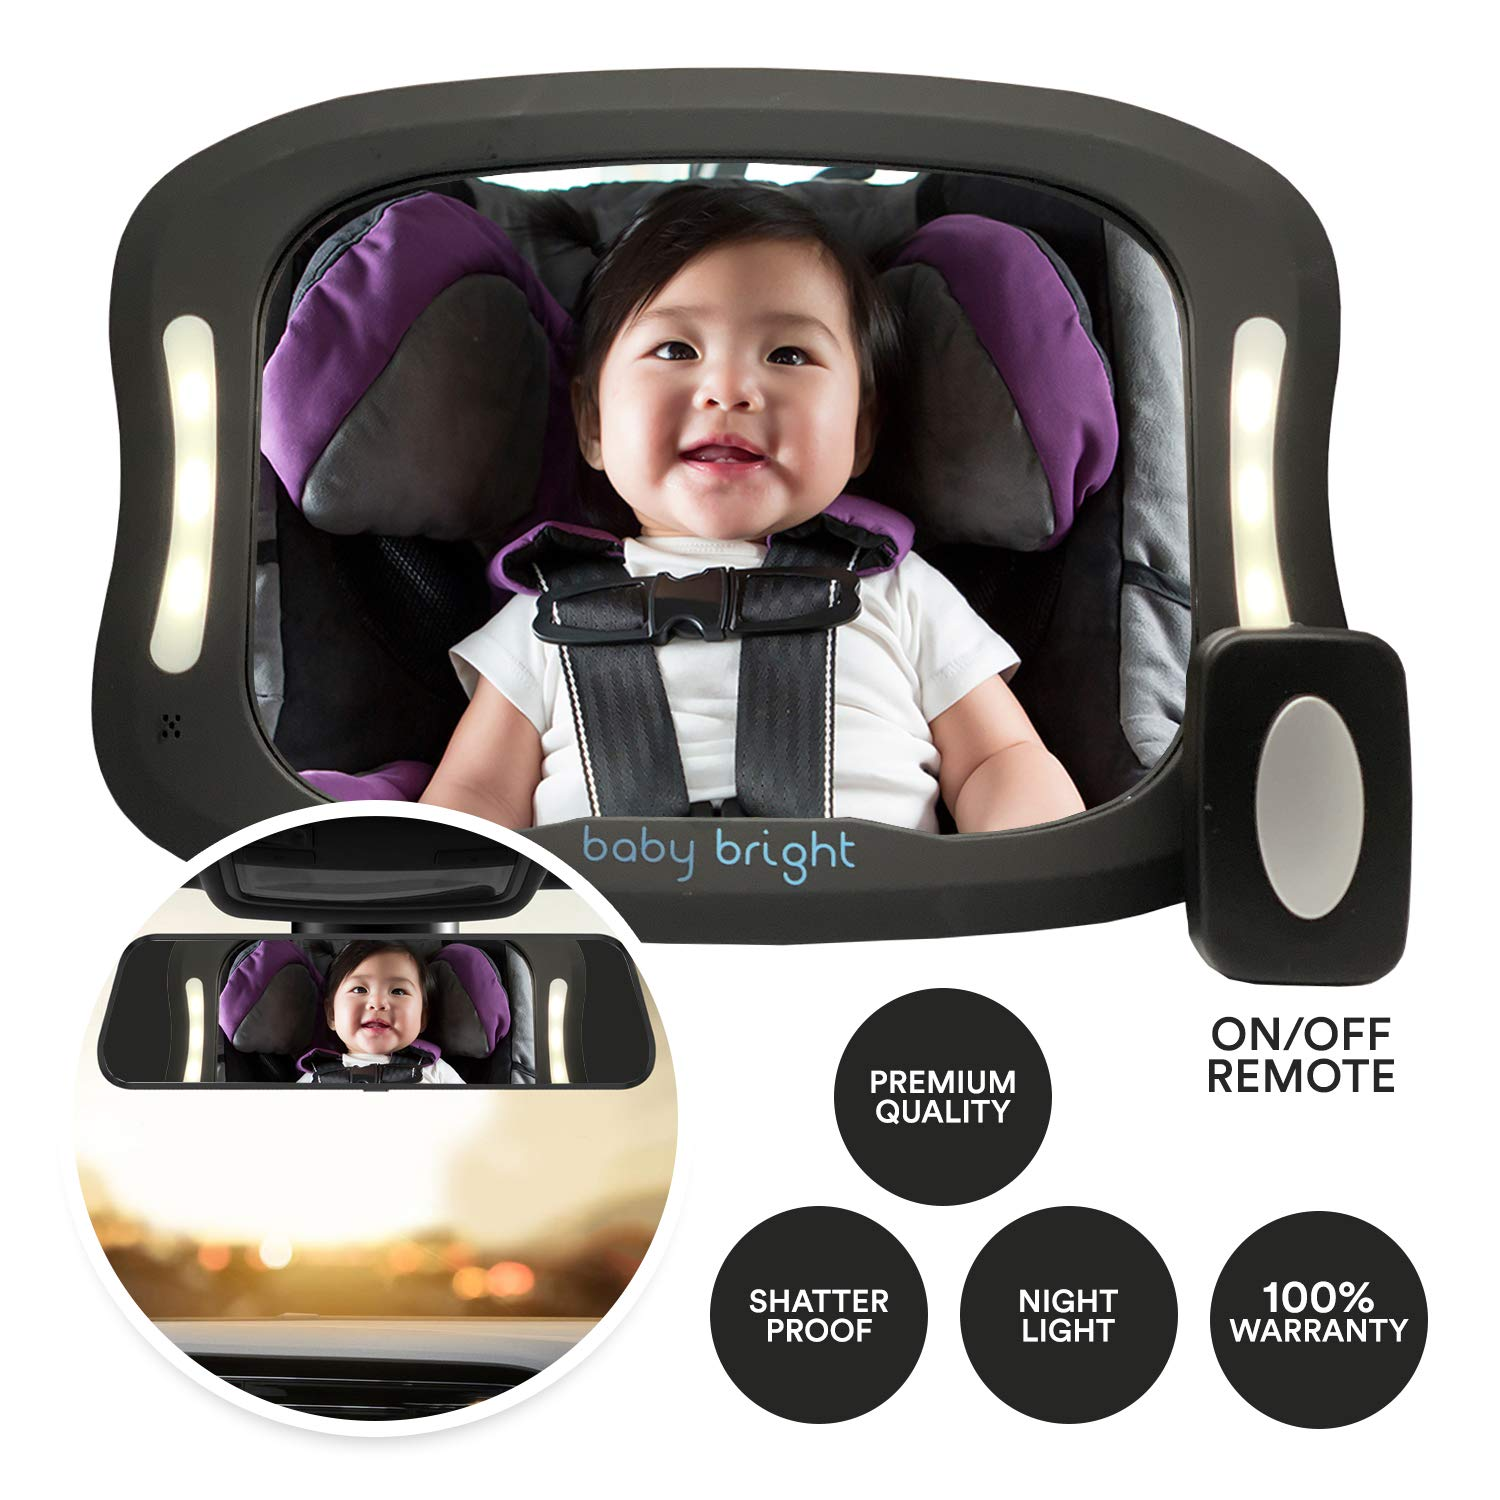 Baby Car Mirror with Light (for Driving at Night) & FOB Control   Improved Longer Lasting Battery Life   Backseat Rear View Baby Mirror by Baby Bright   Shatter-Proof, Fully Assembled by BabyBrite